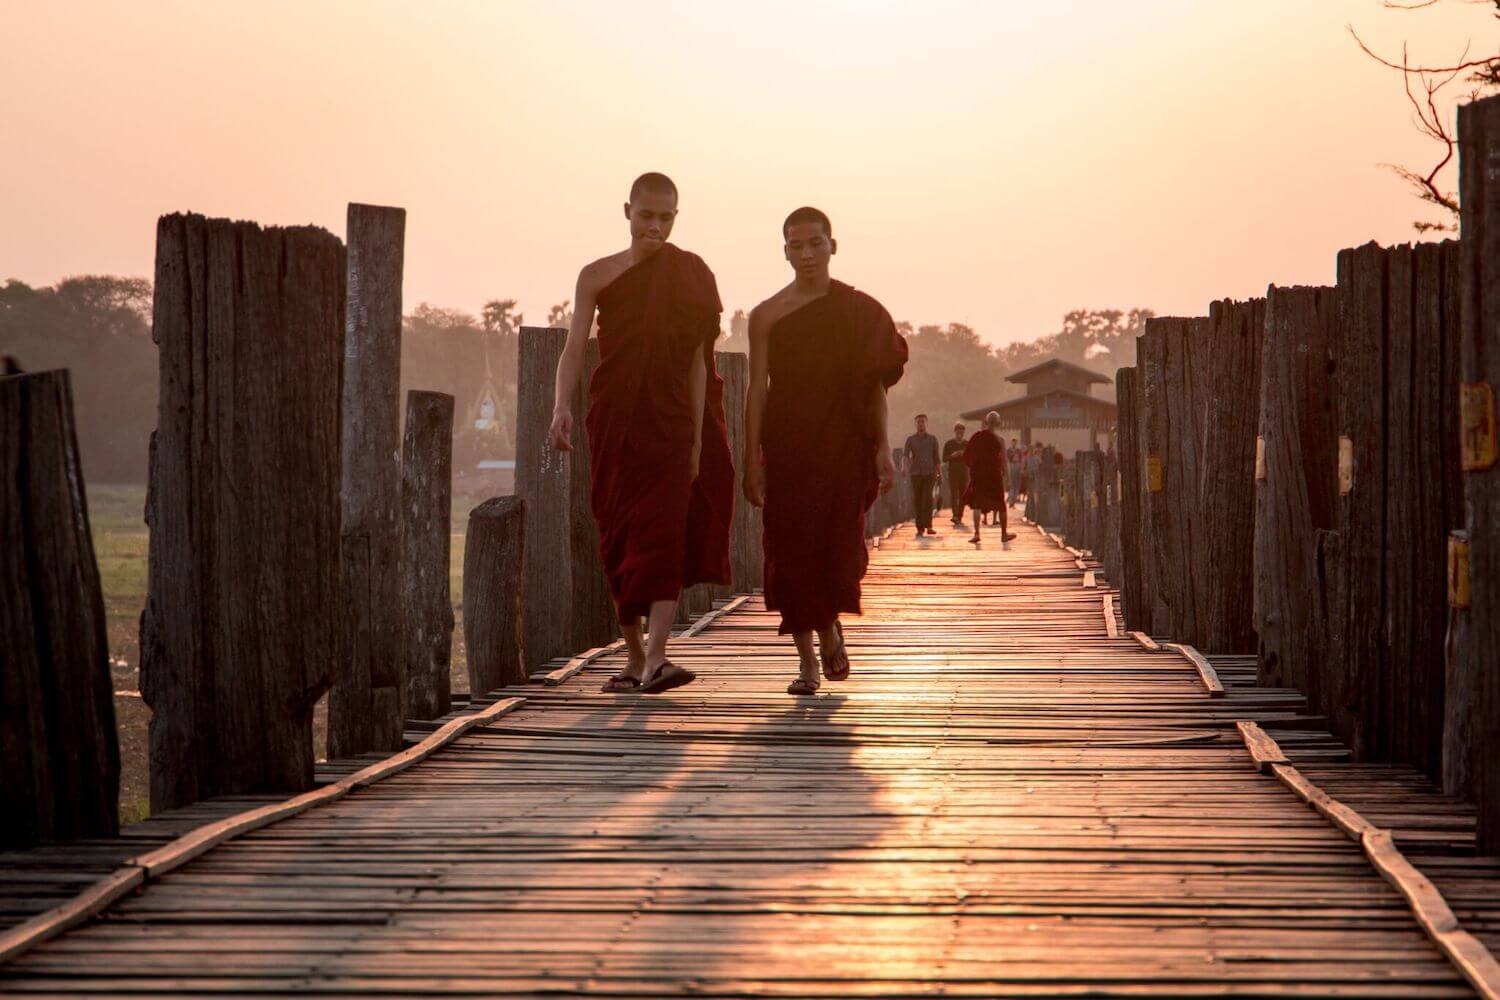 Best Myanmar Itinerary: Photo of two monks in crimson robes walking along U Bein Bridge in Mandalay Myanmar at sunrise. Photo taken by Ryan Brown of Lost Boy Memoirs, edited in Lightroom.